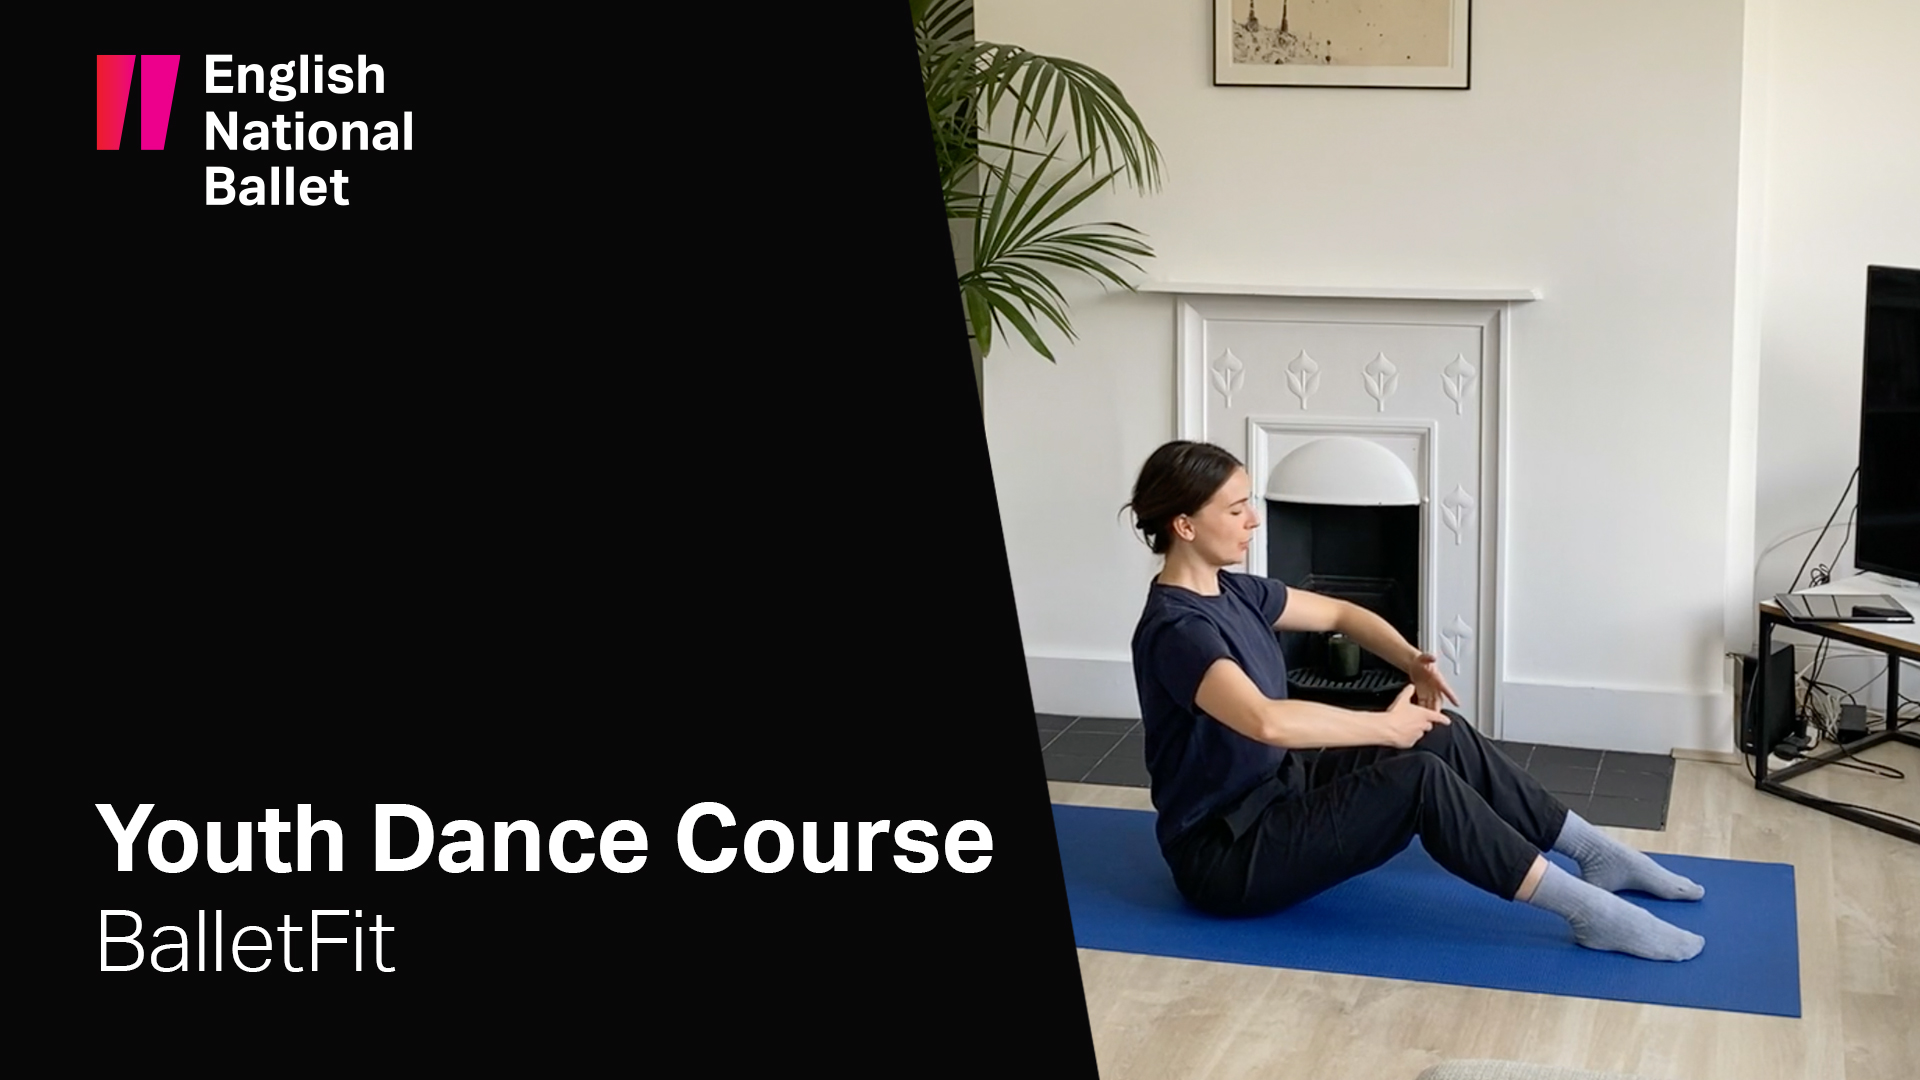 Youth Dance Course: BalletFit | English National Ballet